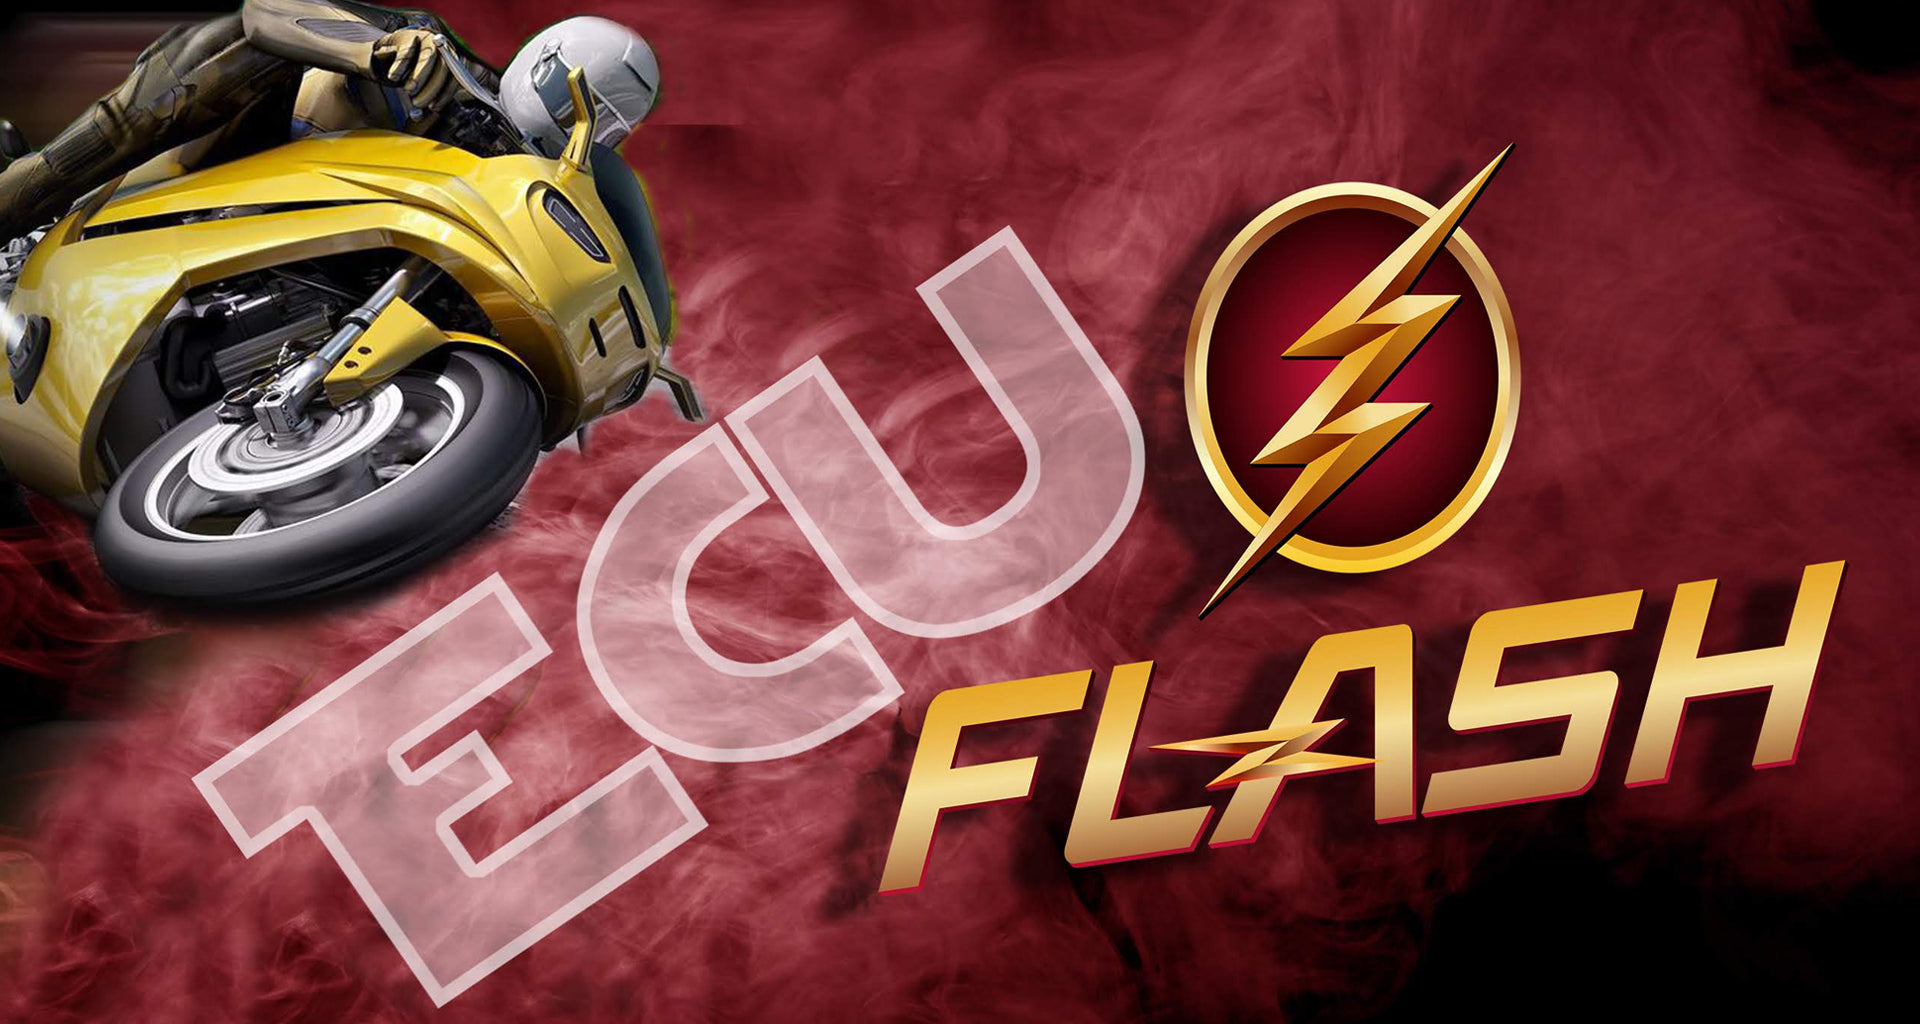 ECU Flash Services banner